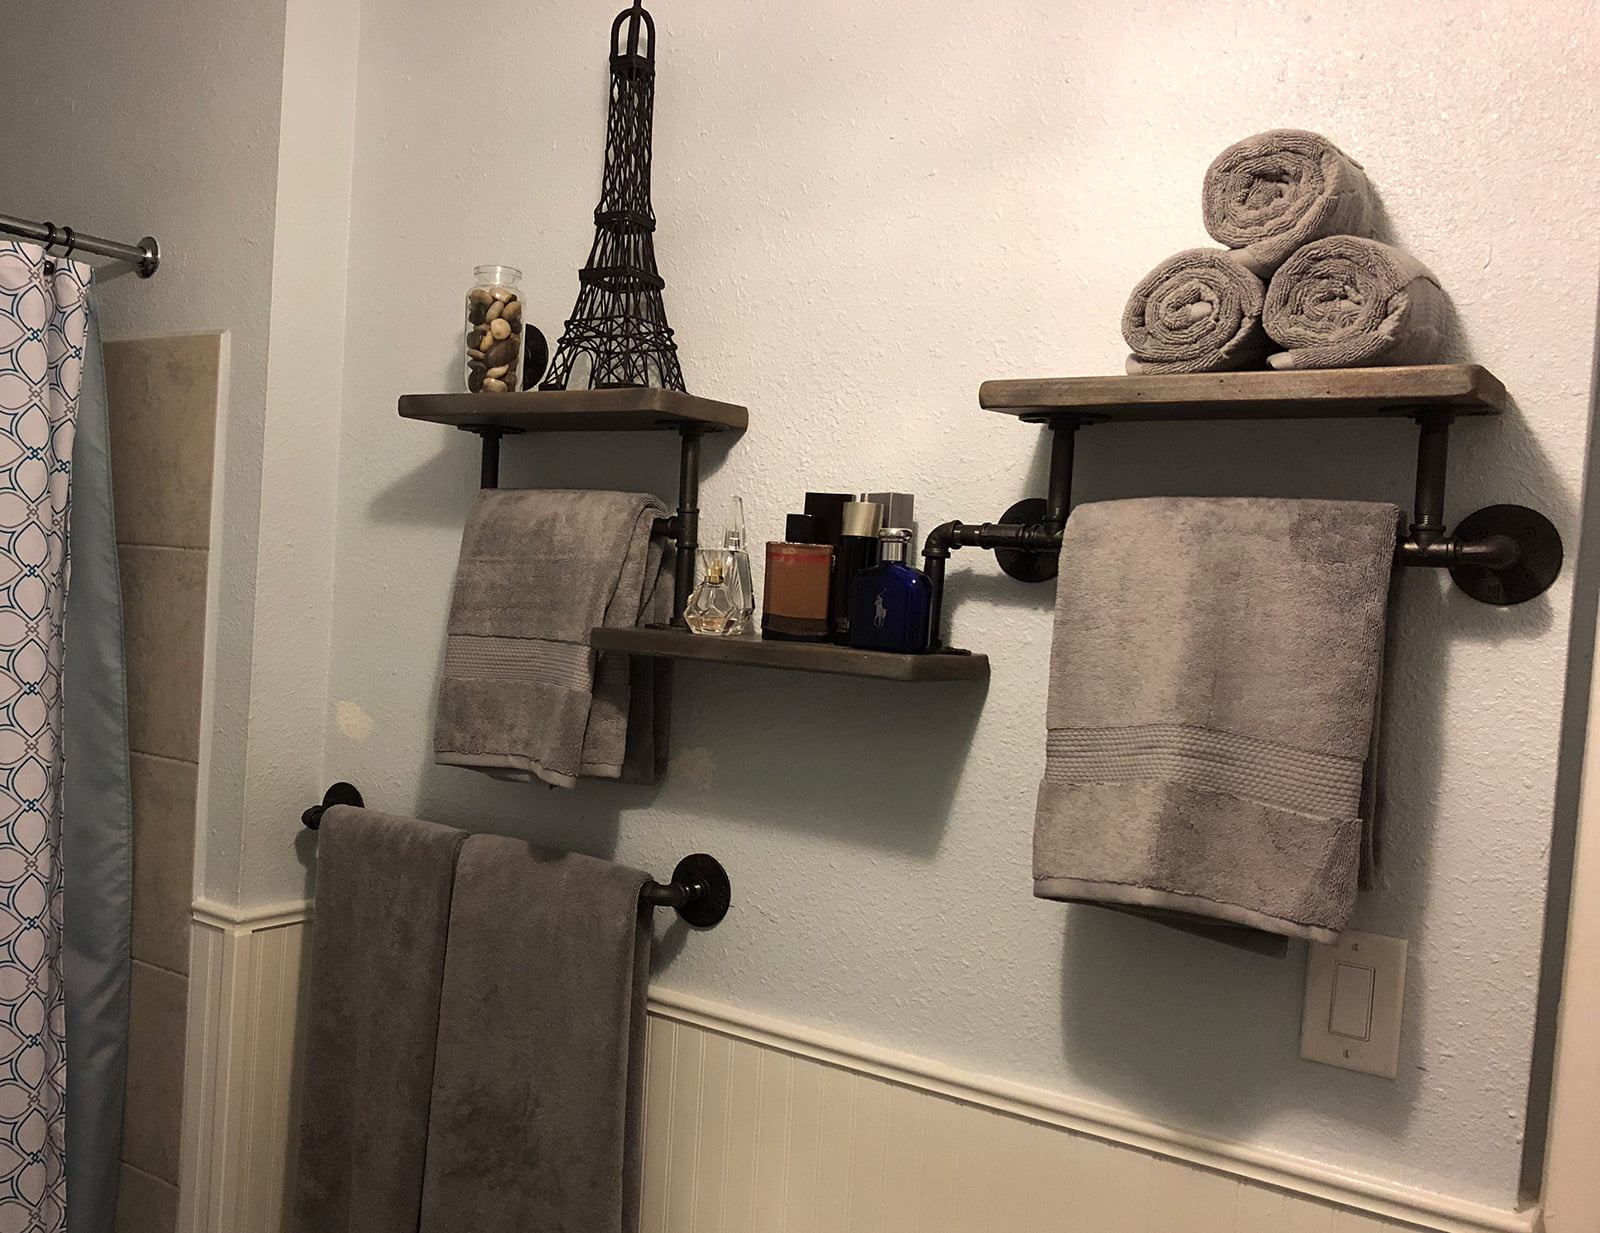 Steampunk Wall Shelves Custom Bathroom Shelving Rcg Designs Steampunk Rustic